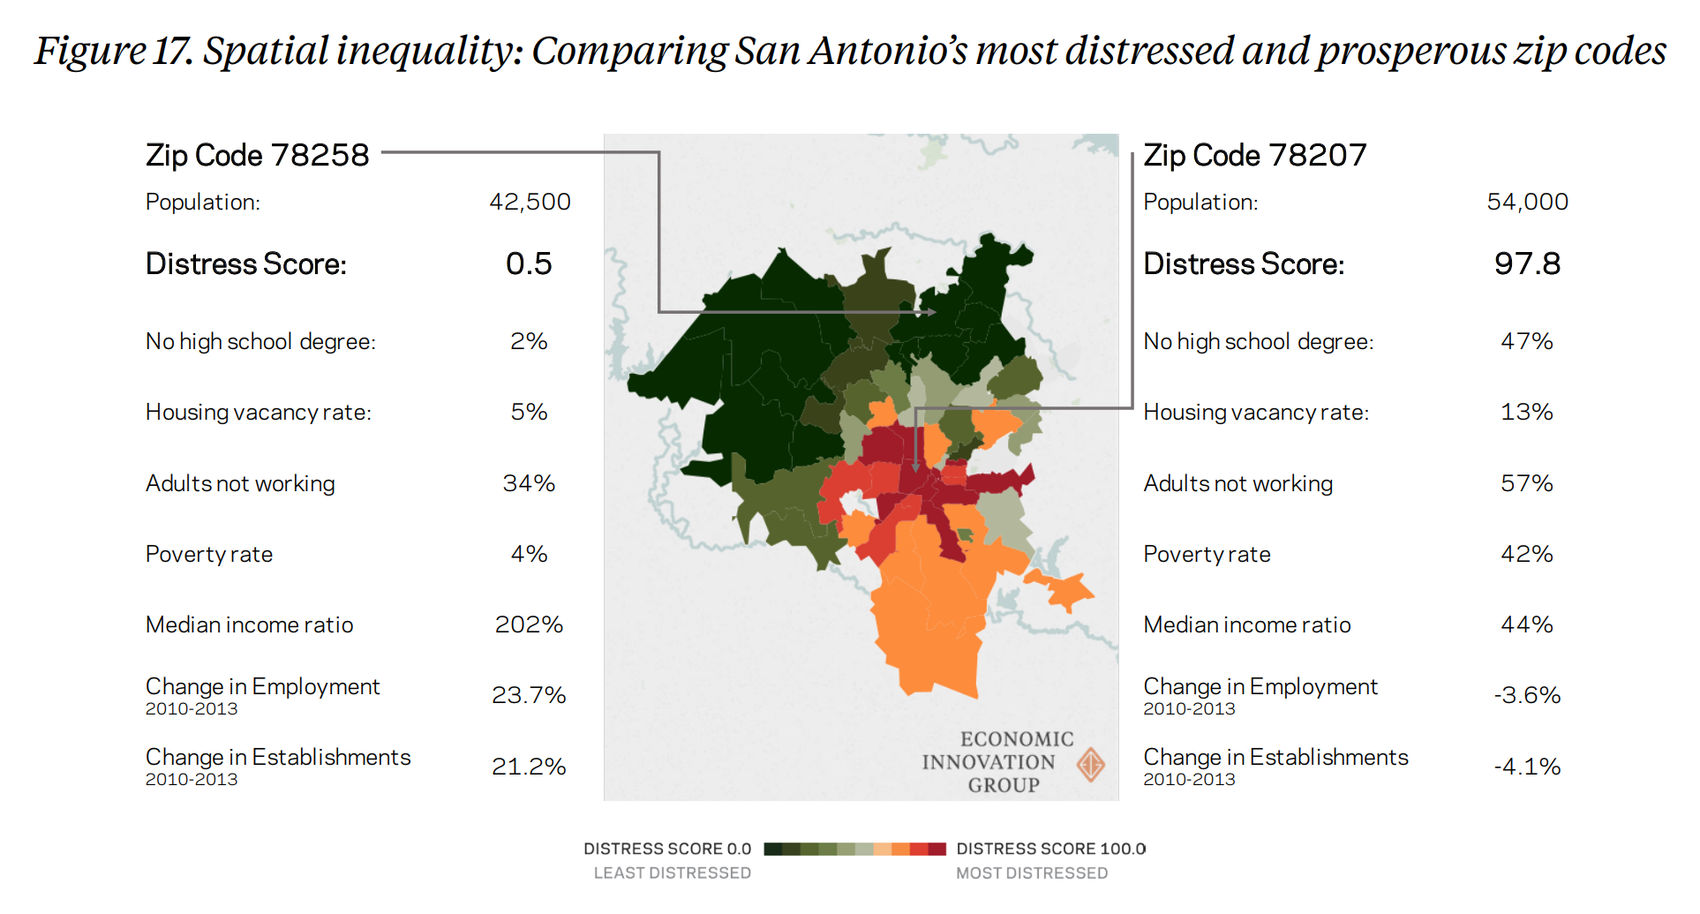 Source: The Economic Innovation Group's 2016 Distressed Communities Index